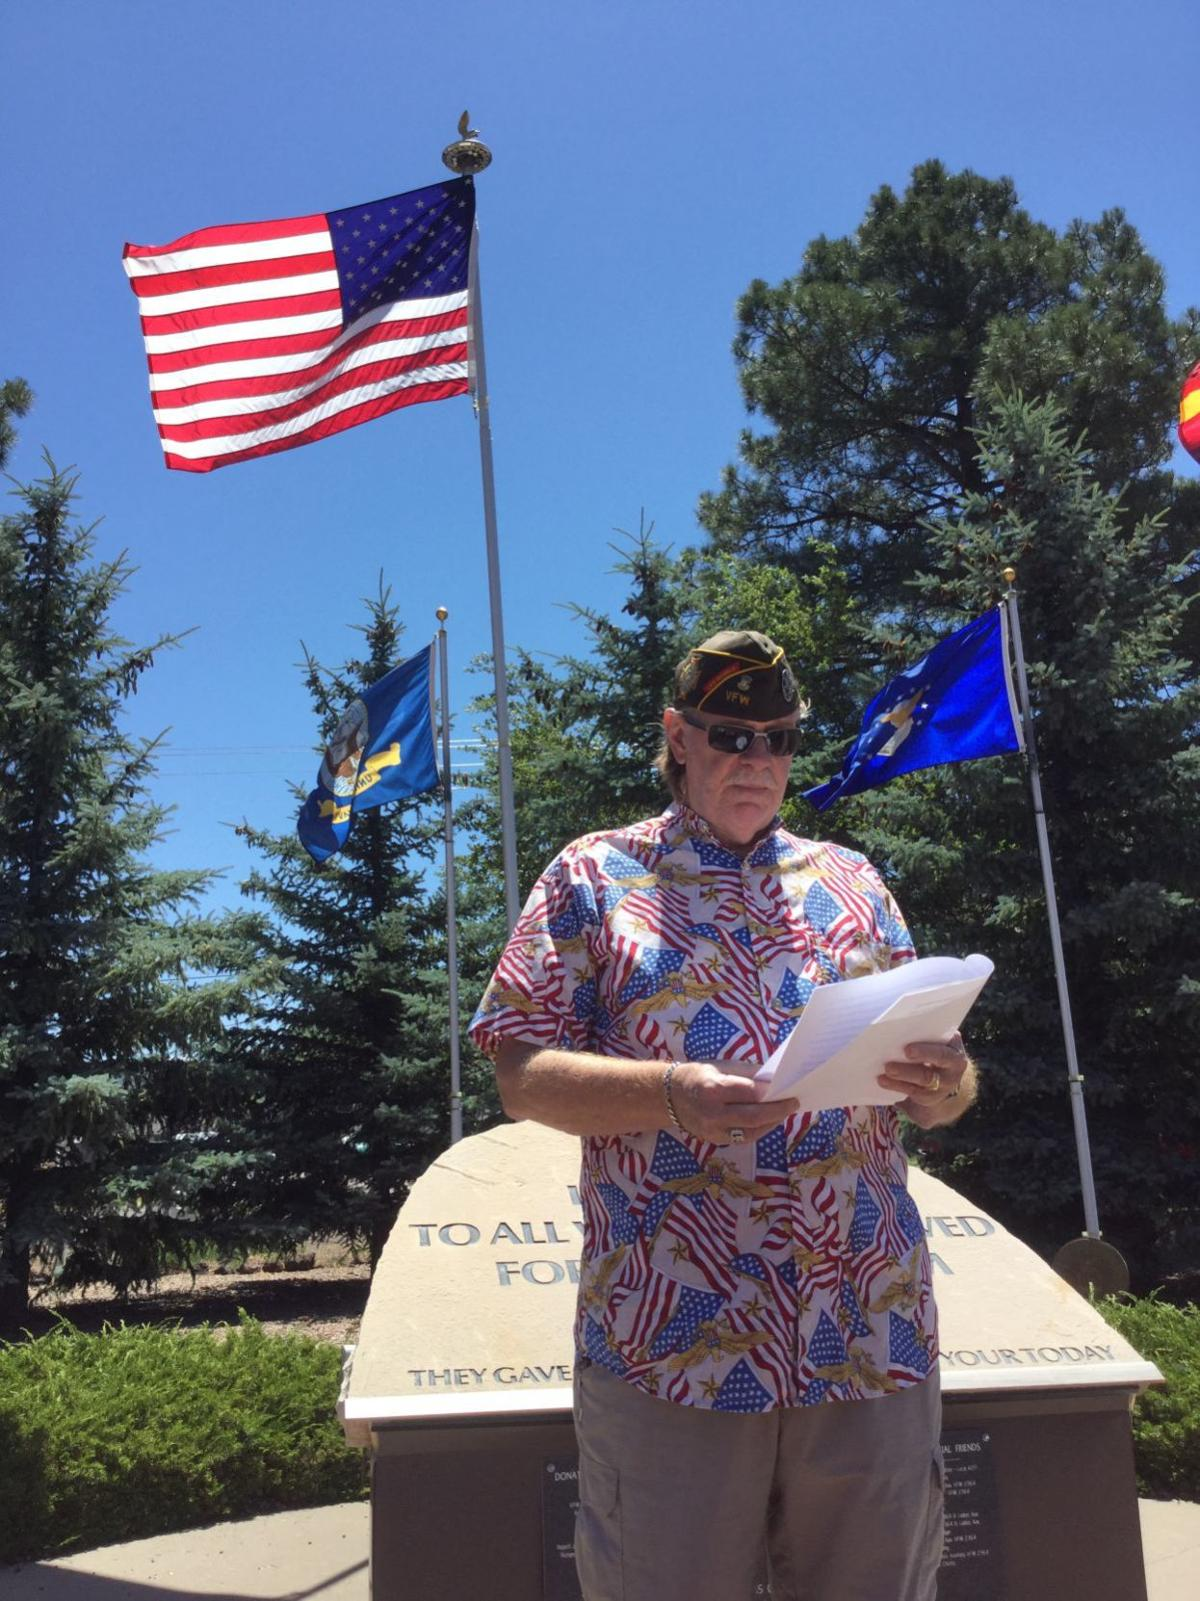 Flag Day in Pinetop-Lakeside